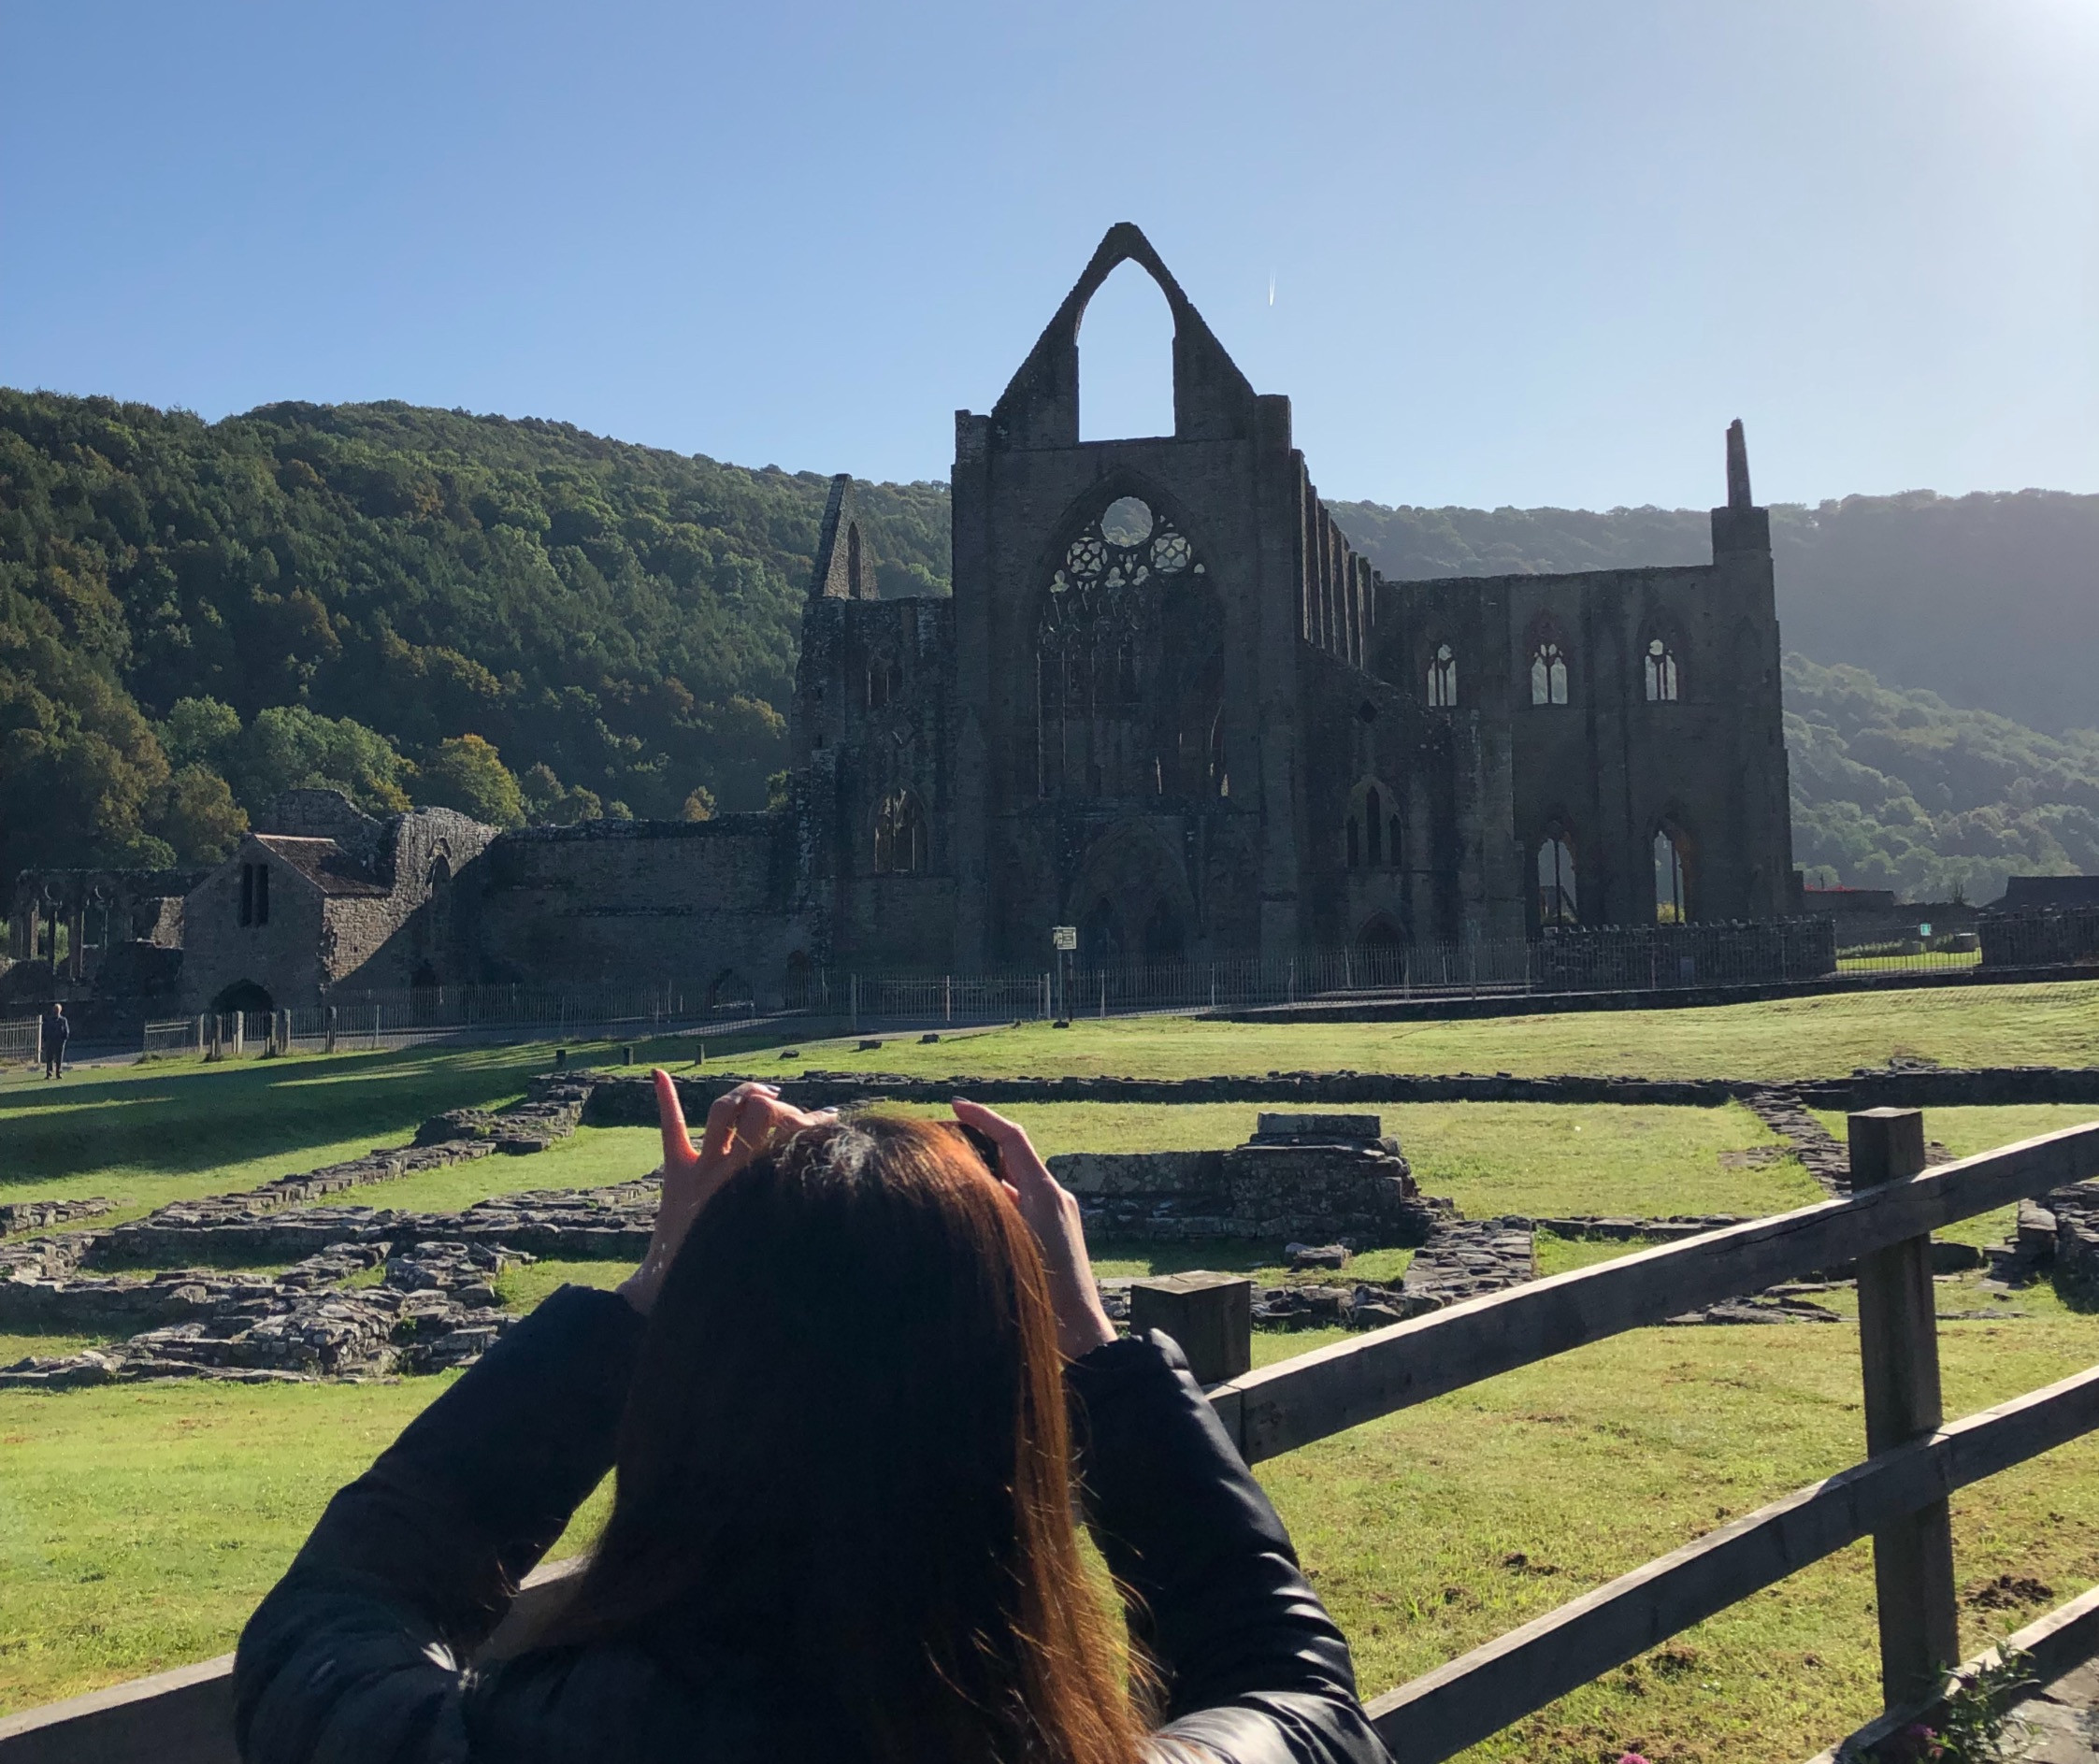 Tintern Abbey and the River Wye valley